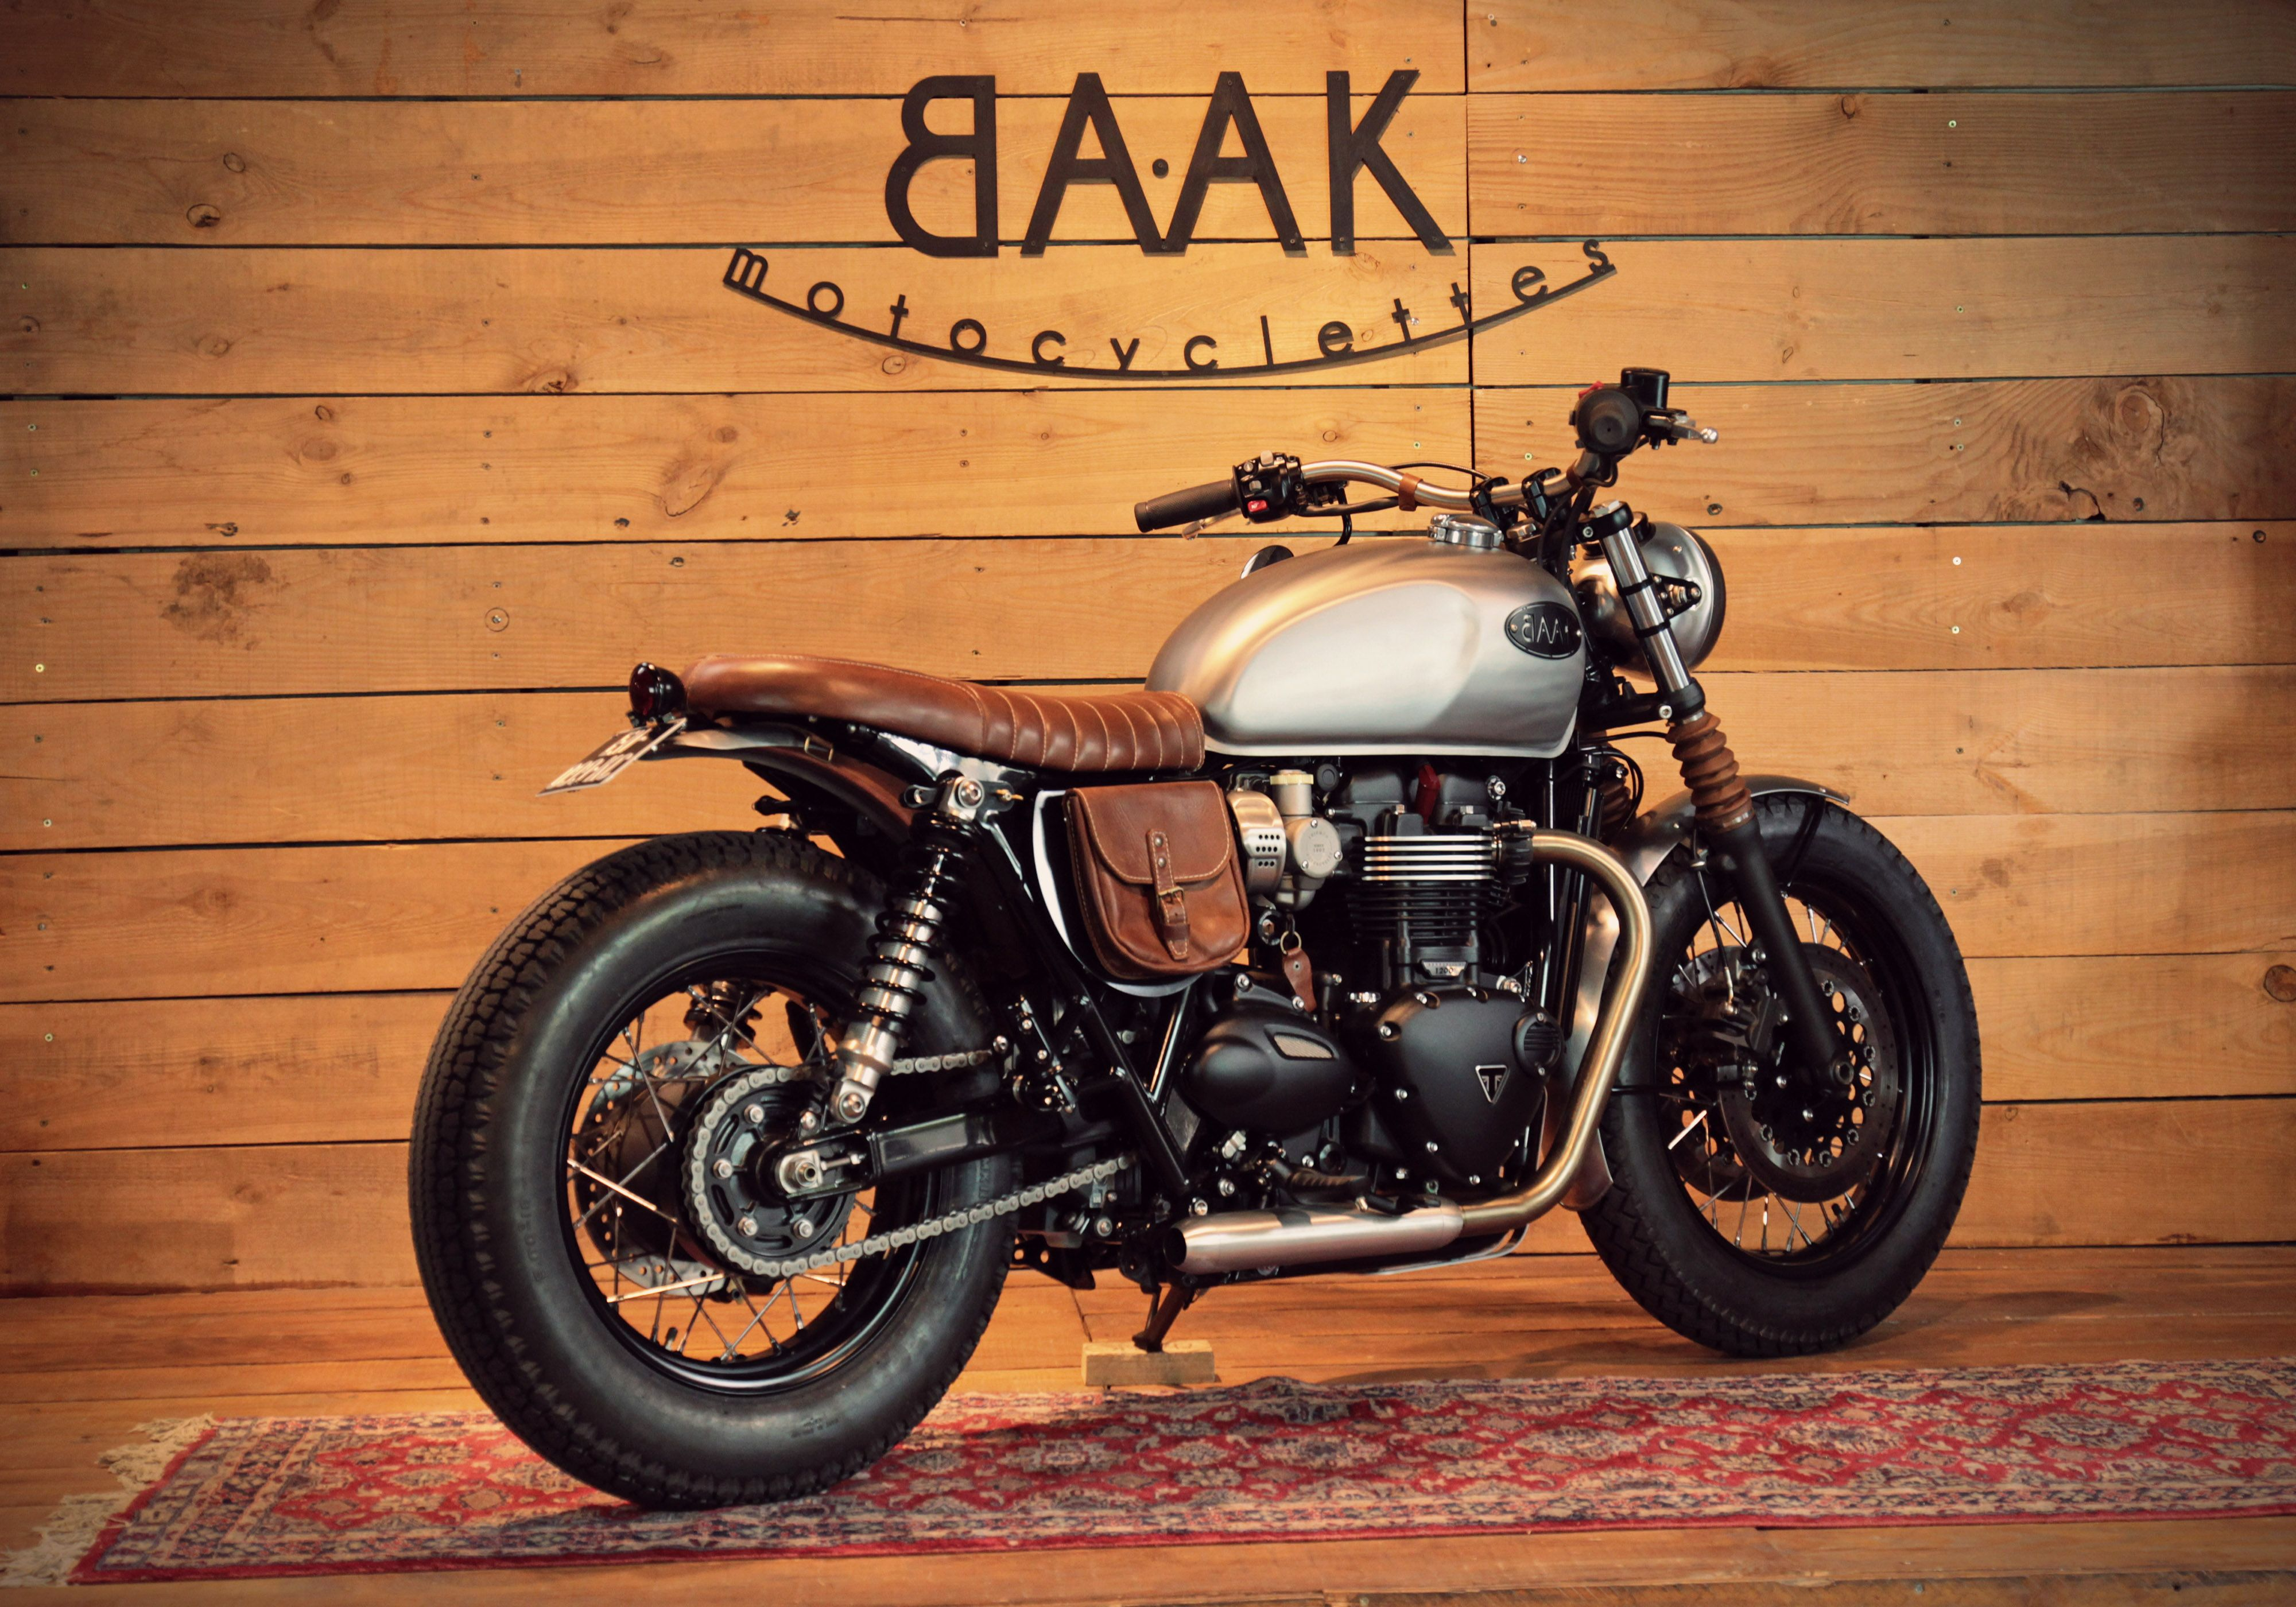 Triumph Bonneville T120 Leather Kit By Baak Motocyclettes Vrooom